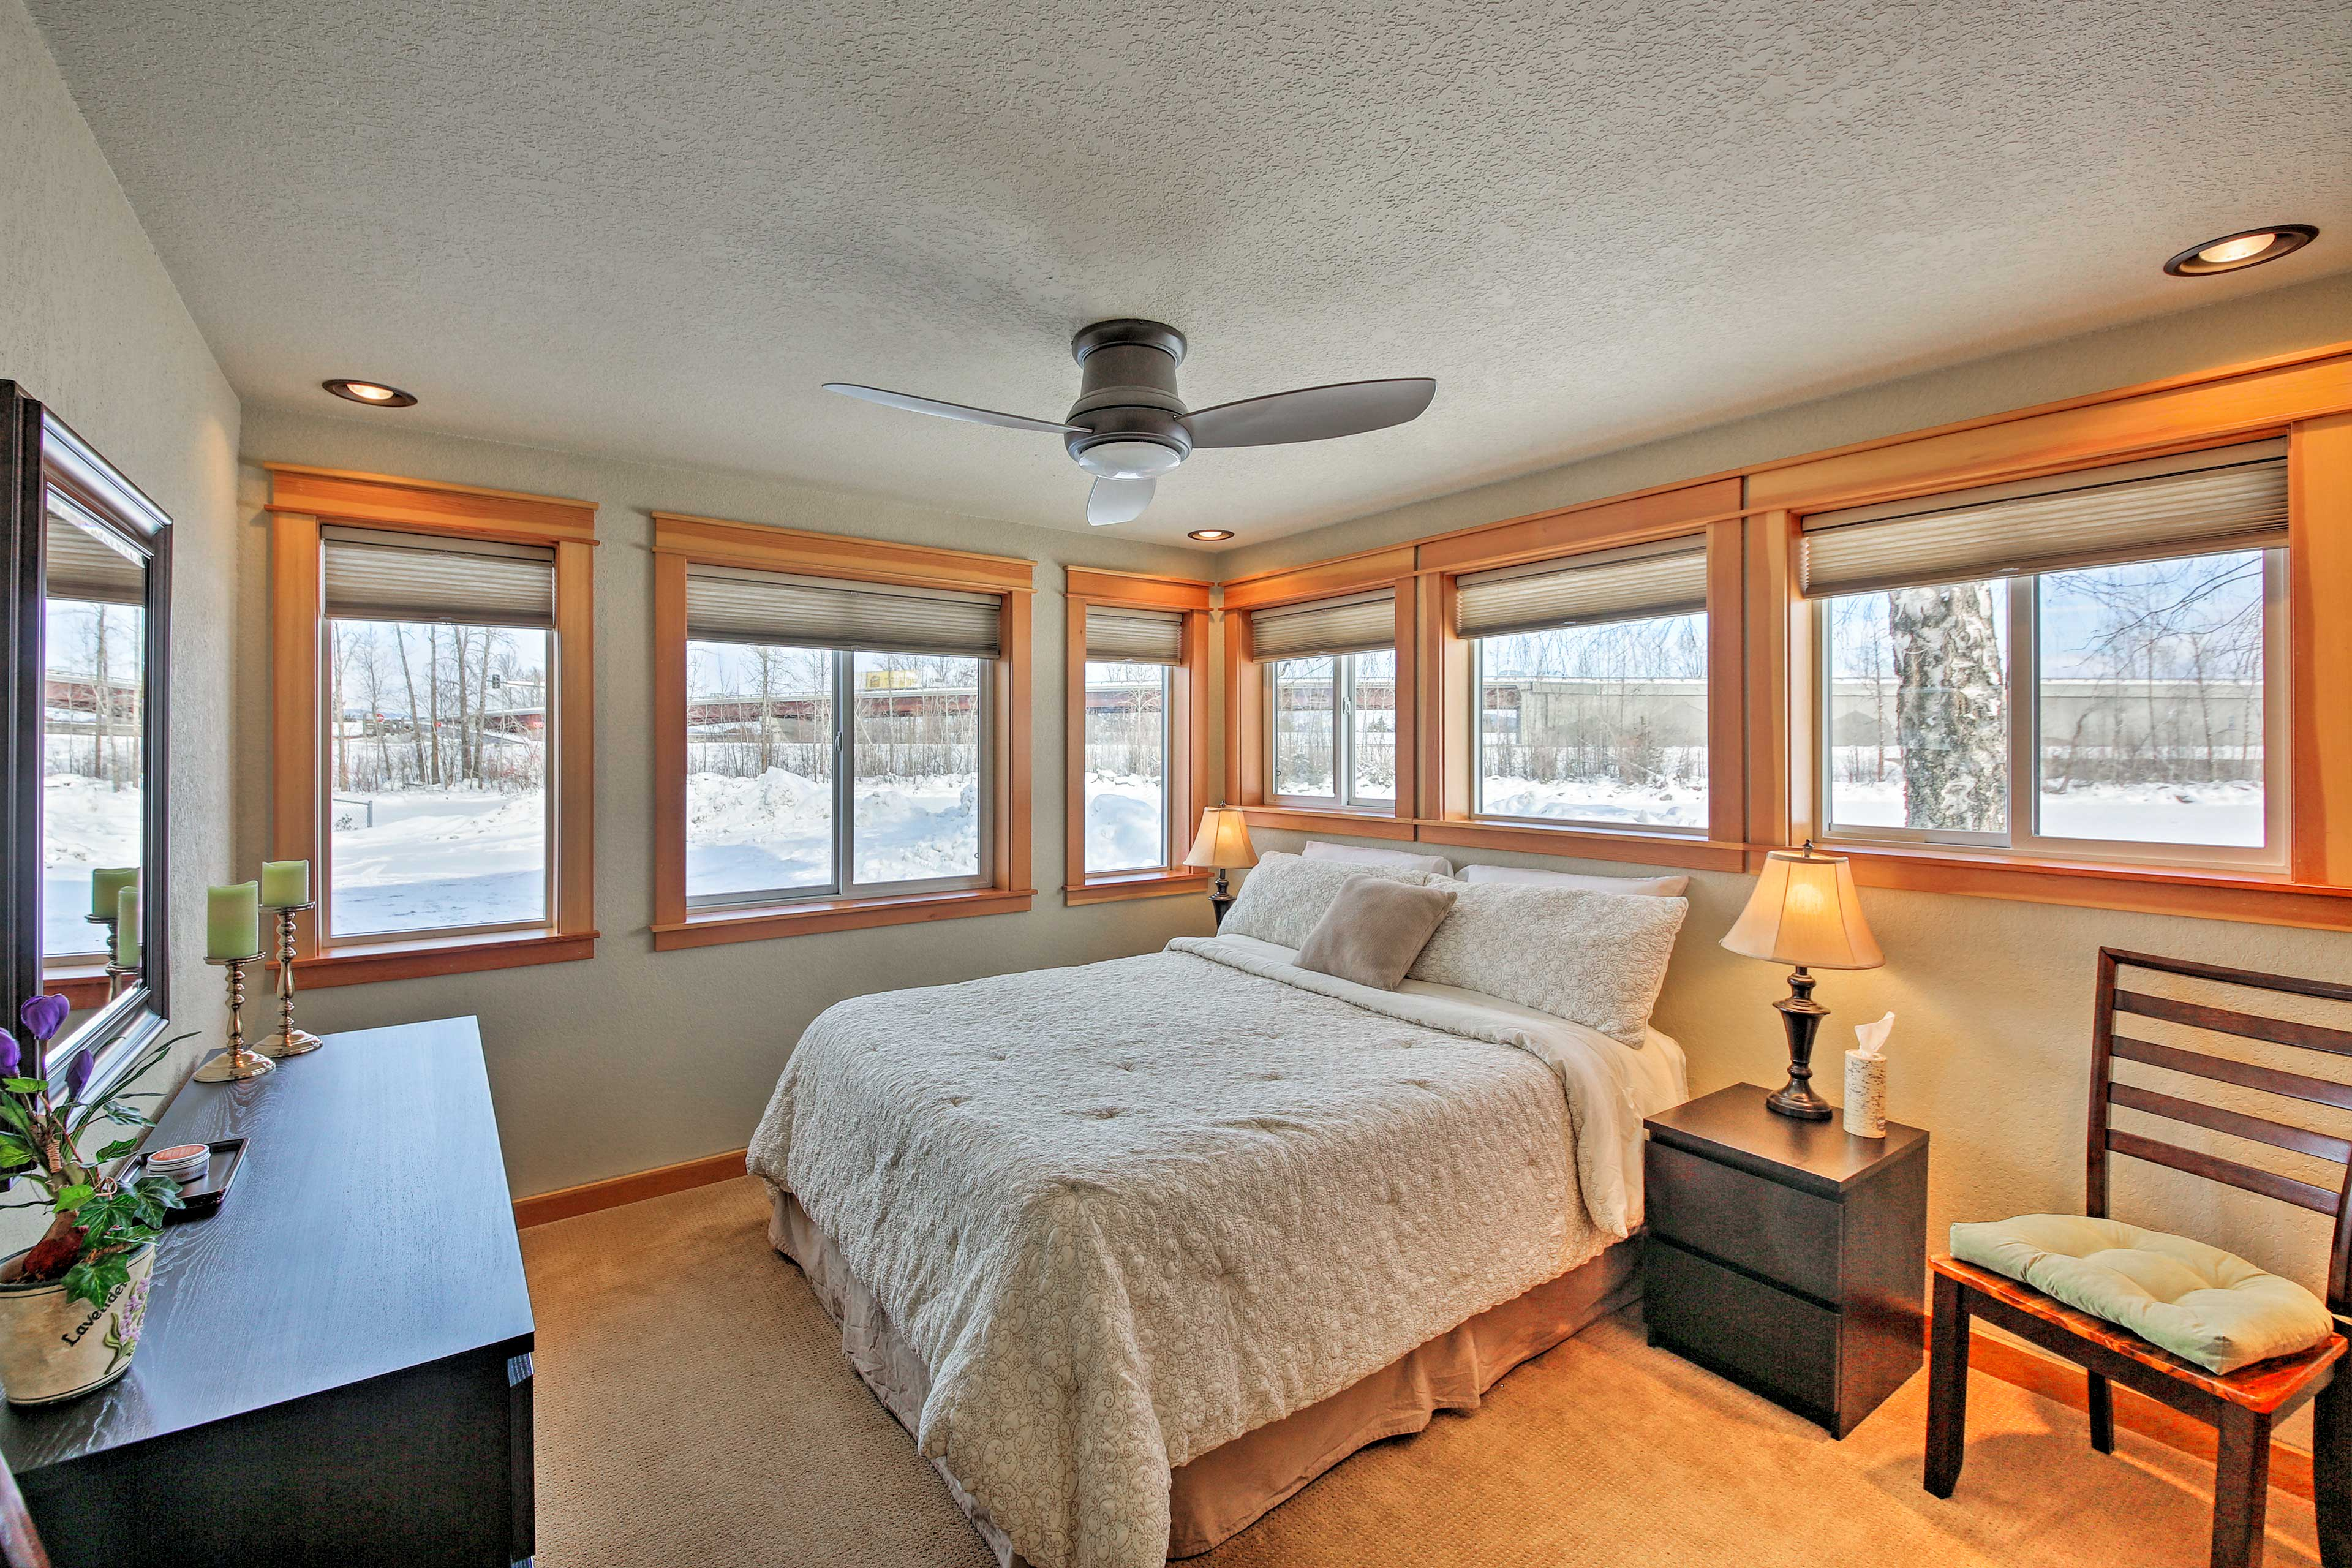 The condo has 1 cozy bedroom for you to sleep in.